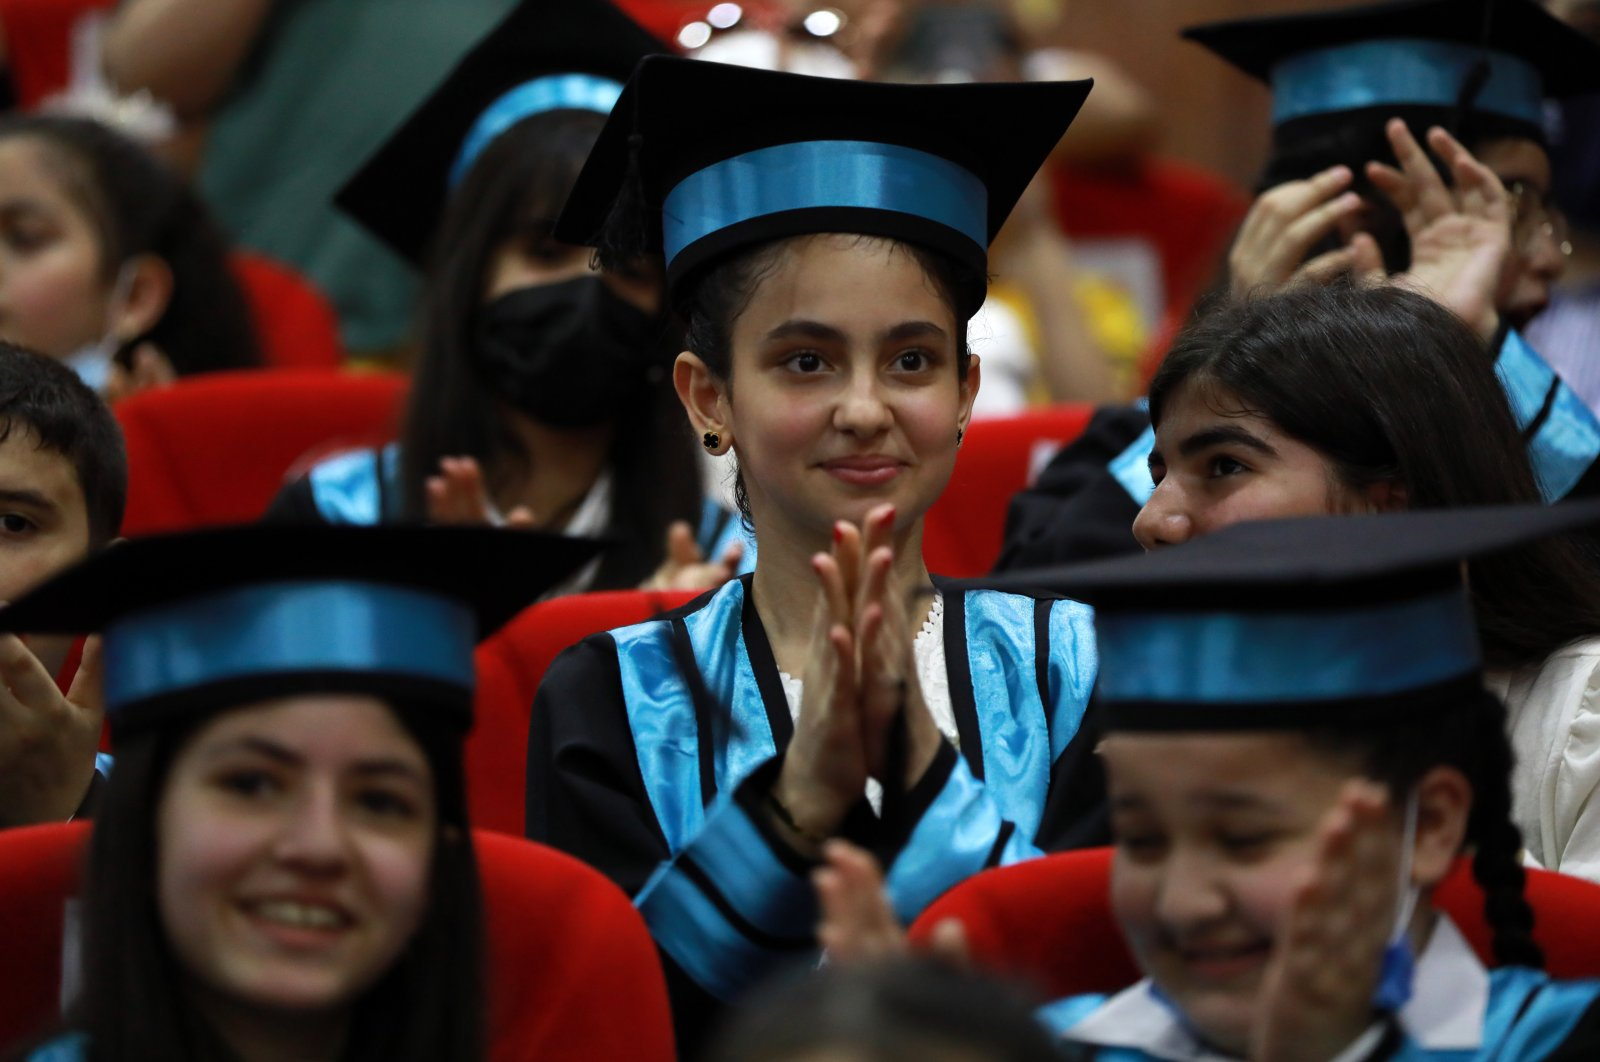 Students attend a graduation ceremony at a school run by the Maarif Foundation in Baghdad, Iraq, June 26, 2021. (AA PHOTO)